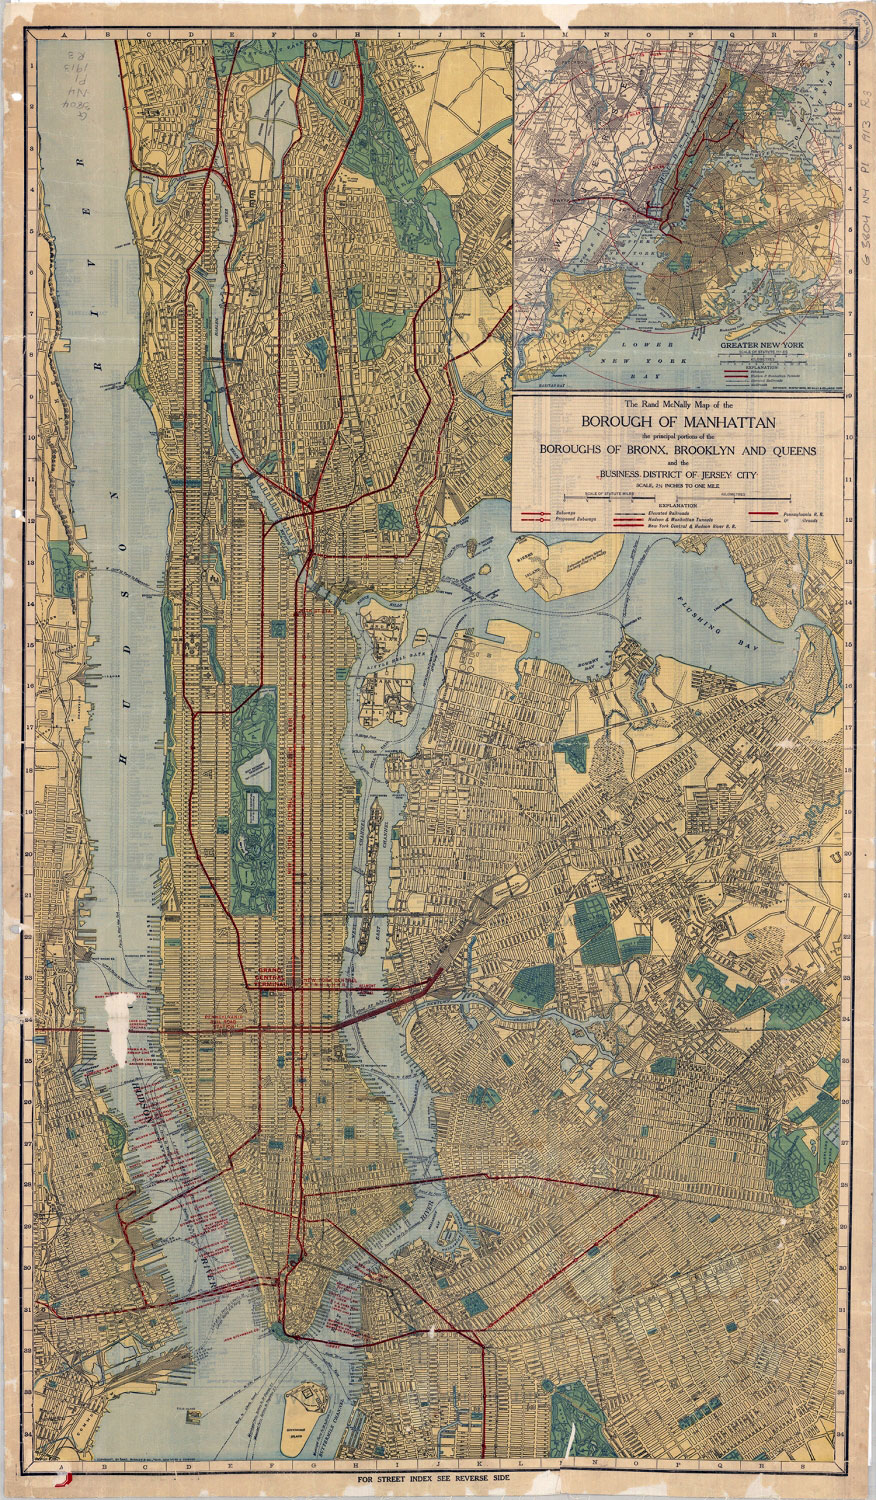 Borough of Manhattan road map